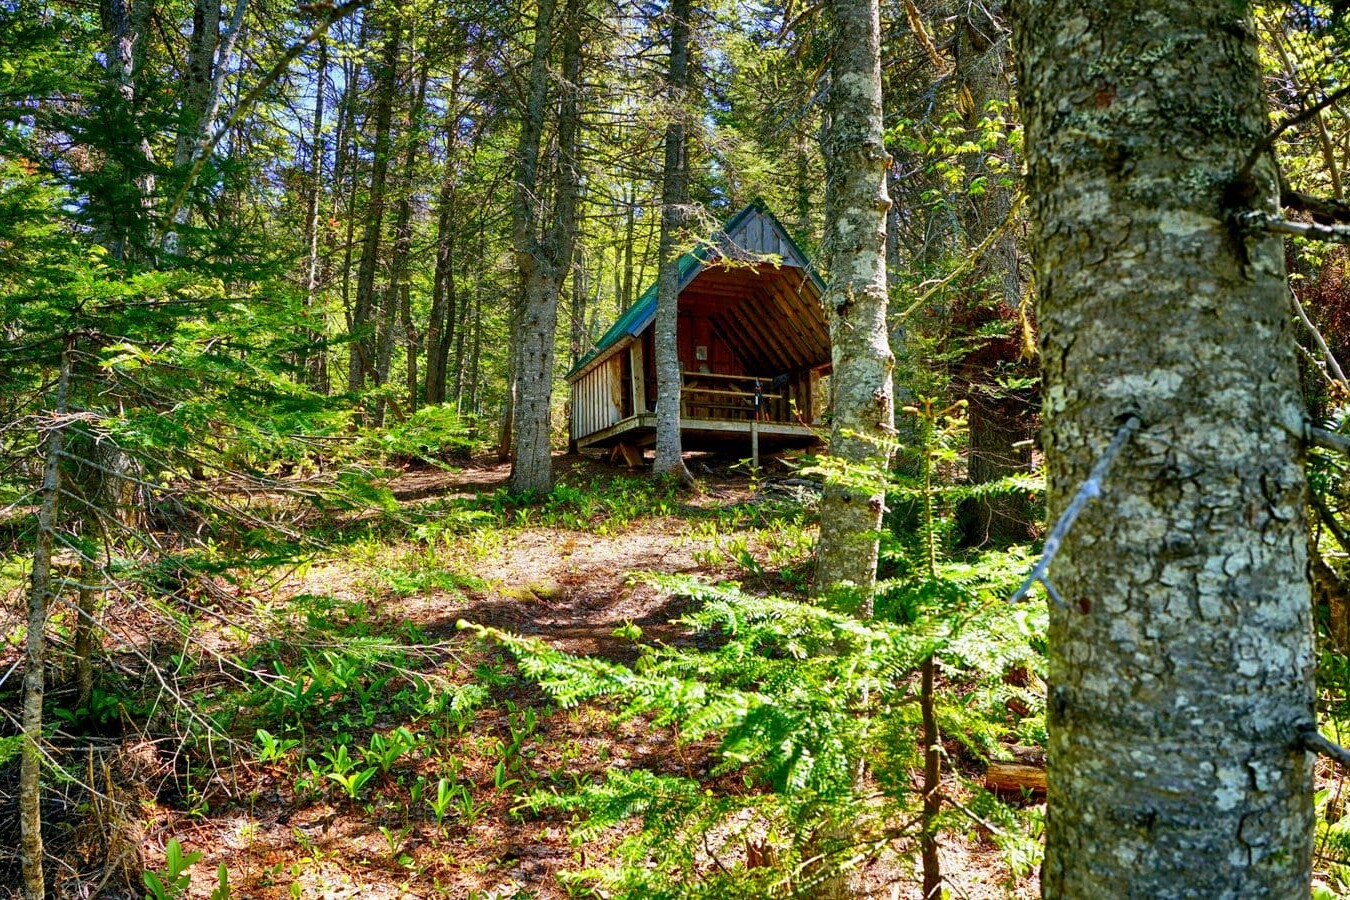 A shelter among some trees on the International Appalachian Trail